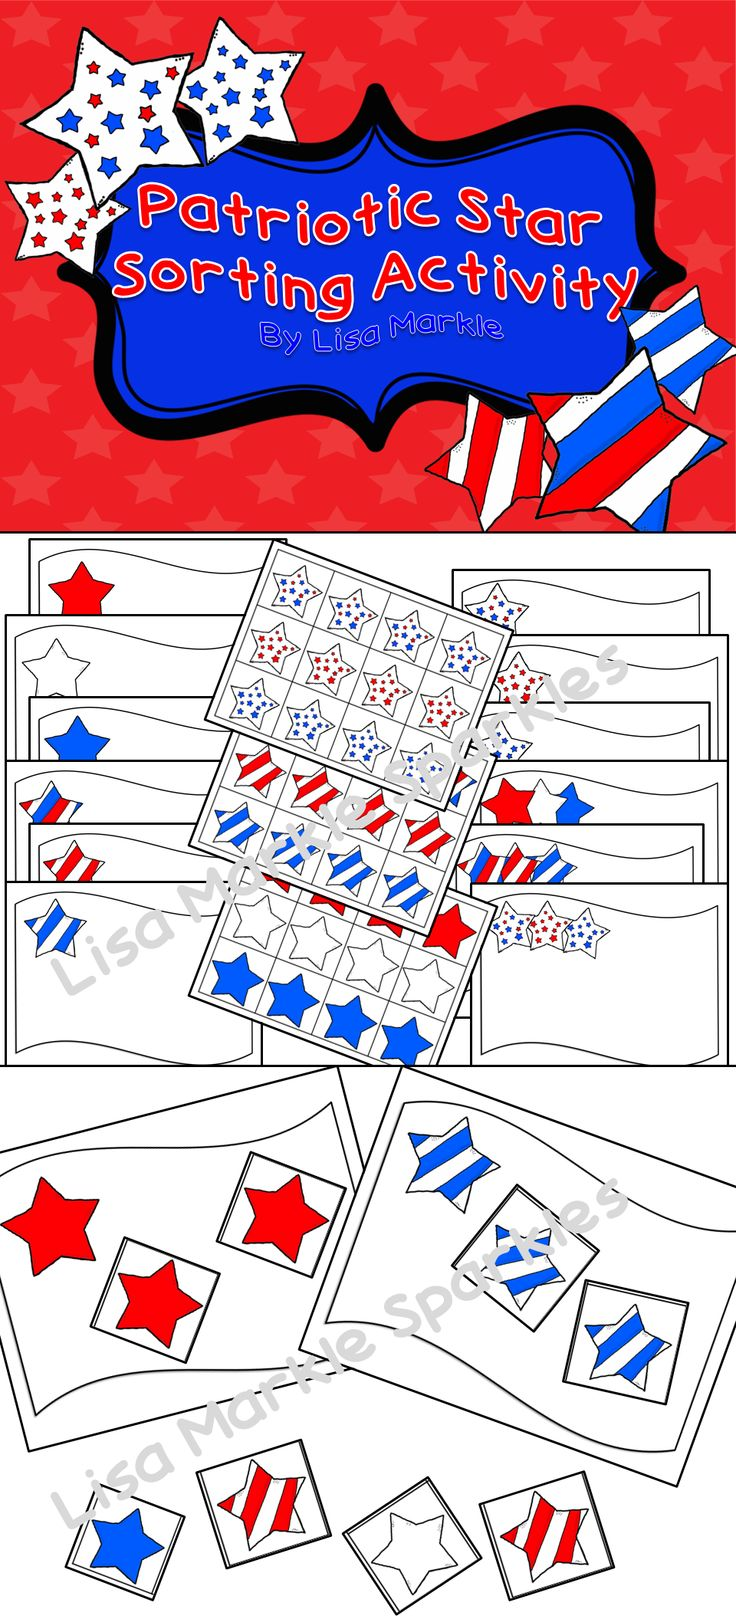 Practice pattern and color recognition while celebrating Veteran's Day, President's Day, Fourth of July, Memorial Day, and Labor Day! Sort the red, white, and blue stars on an assorted set of flag printables! You can adapt this activity to your students' skill level. The stars can be sorted by color, pattern, or both! Print and laminate to make a great math center activity!